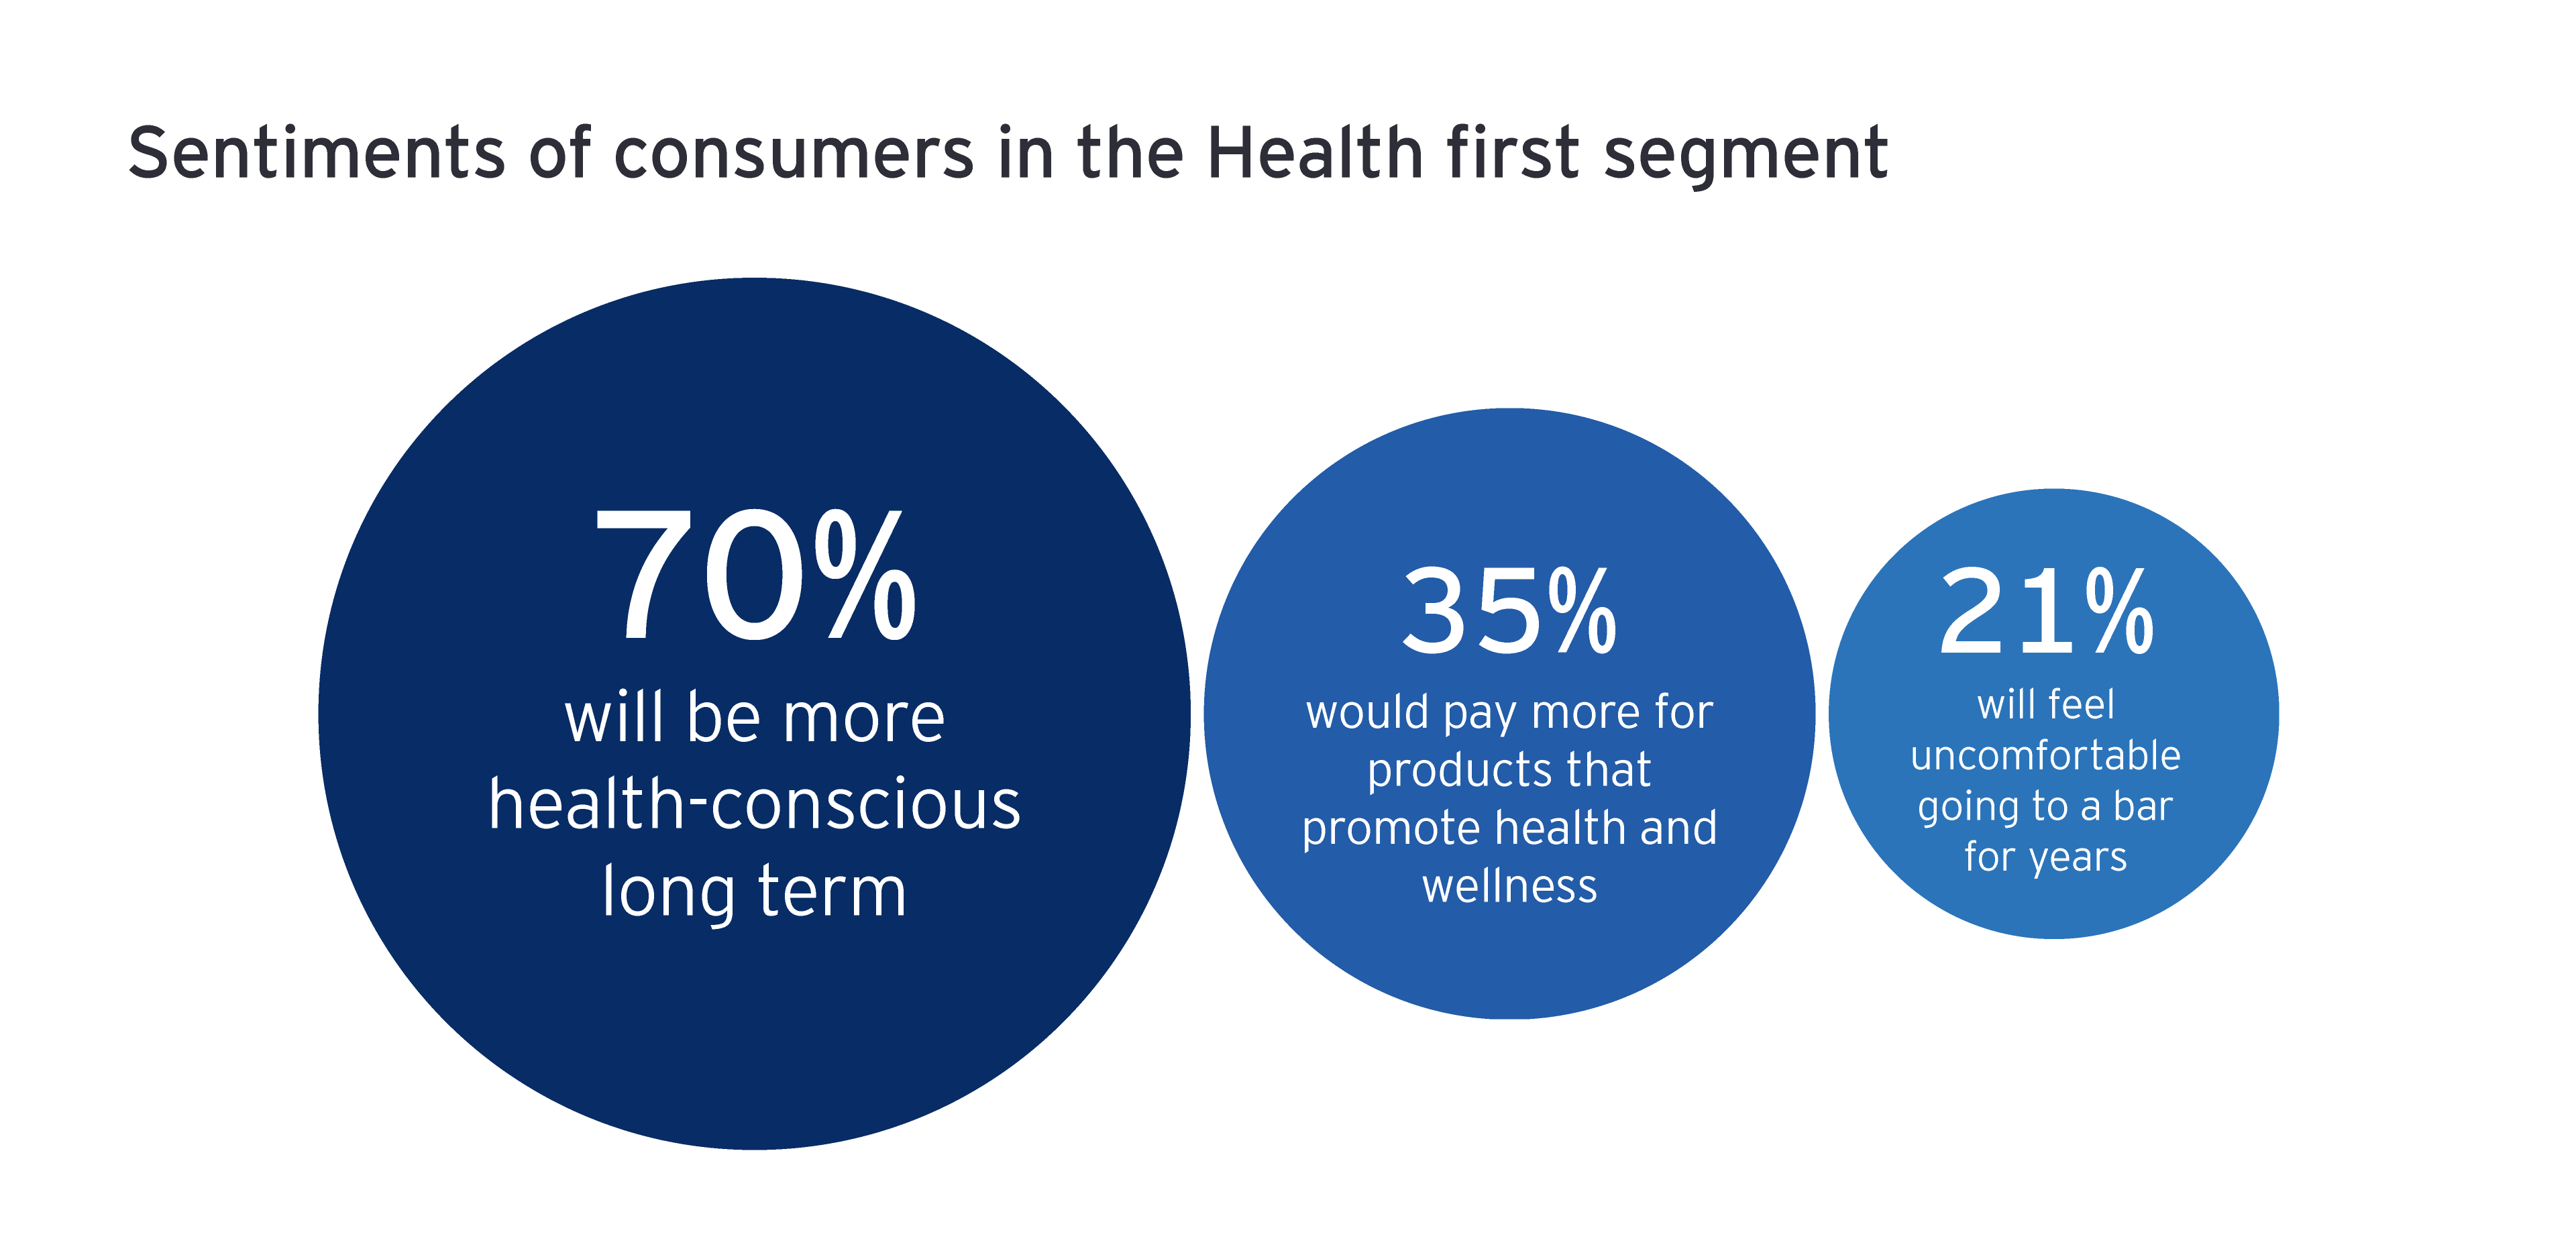 Sentiments of consumers in the Health first segment